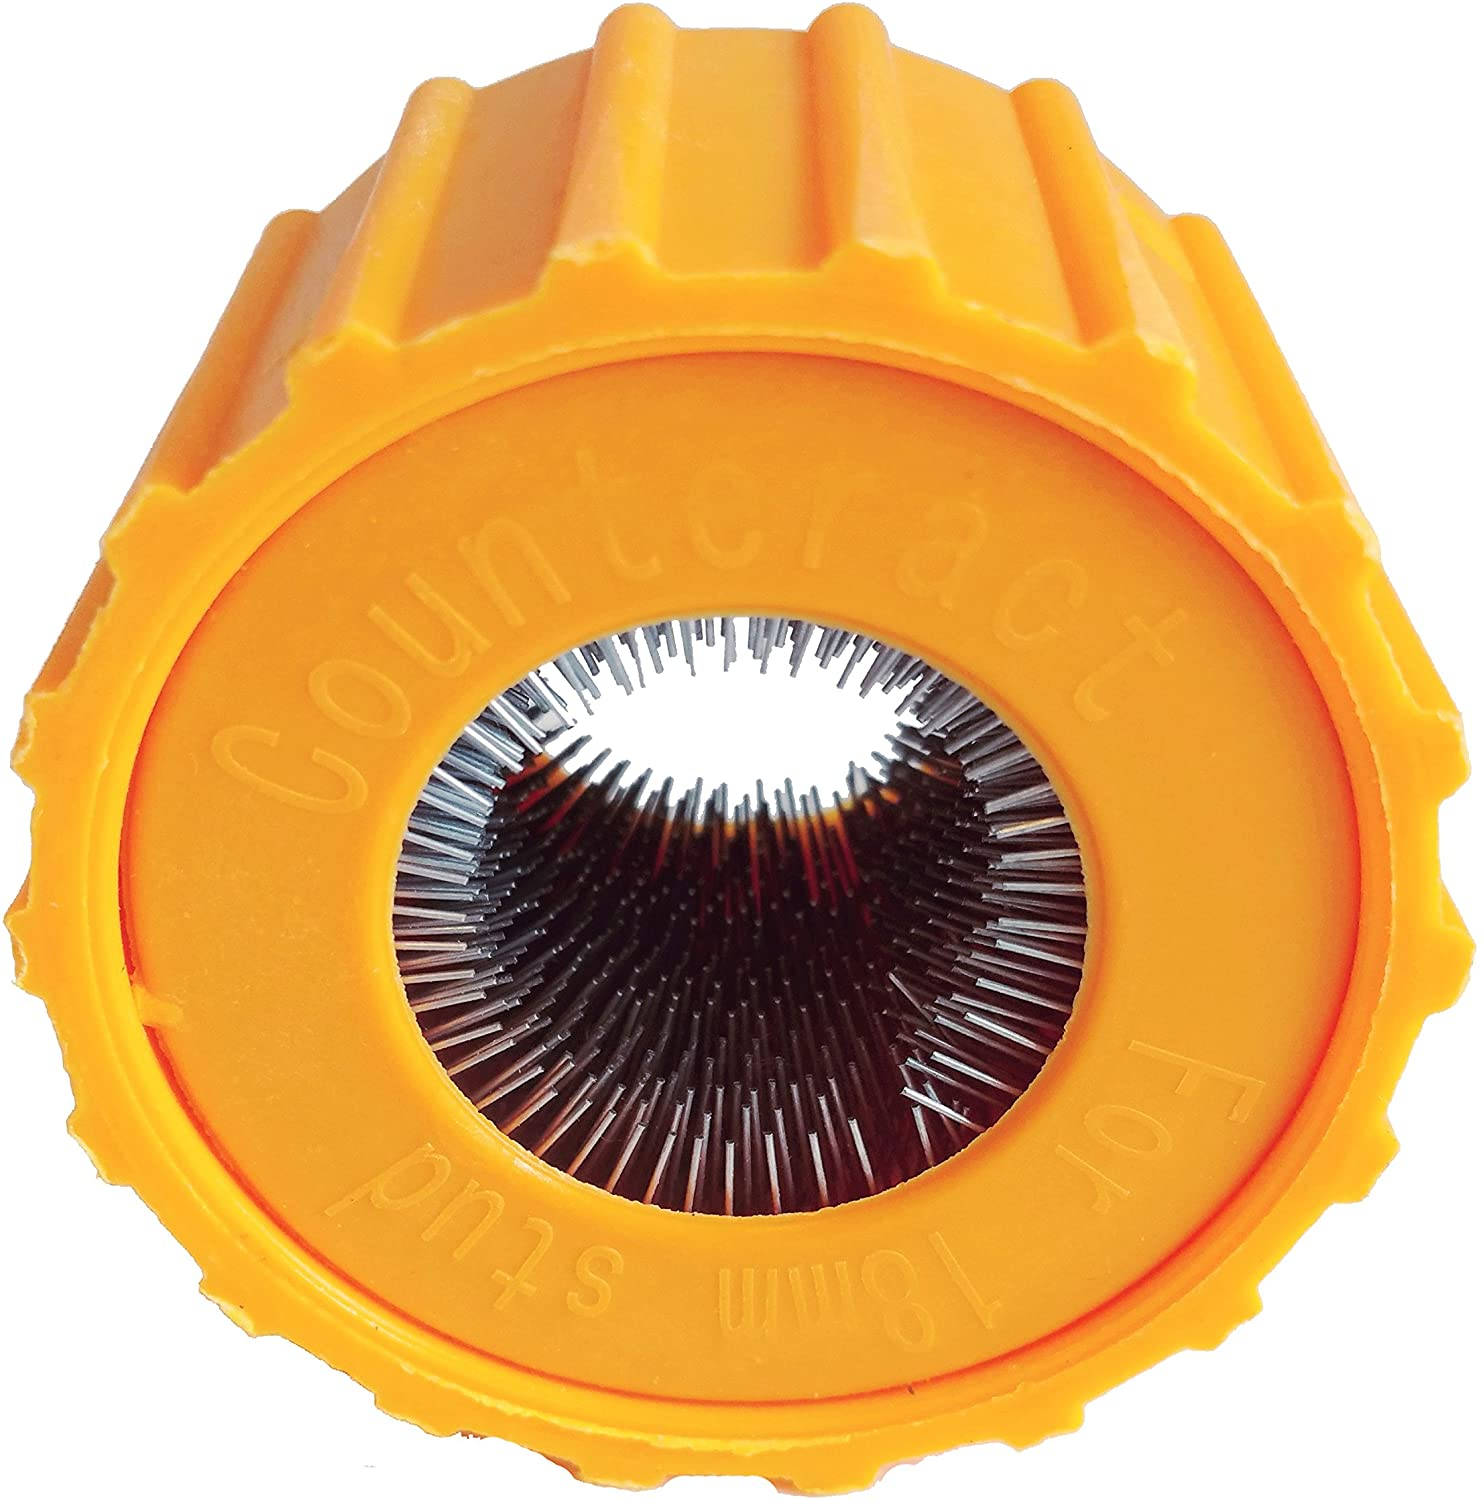 Counteract SBR18 Stud Brush Replacament Brush - 18mm (2 Pack), for use with SBCT22 Stud Cleaning Tool.